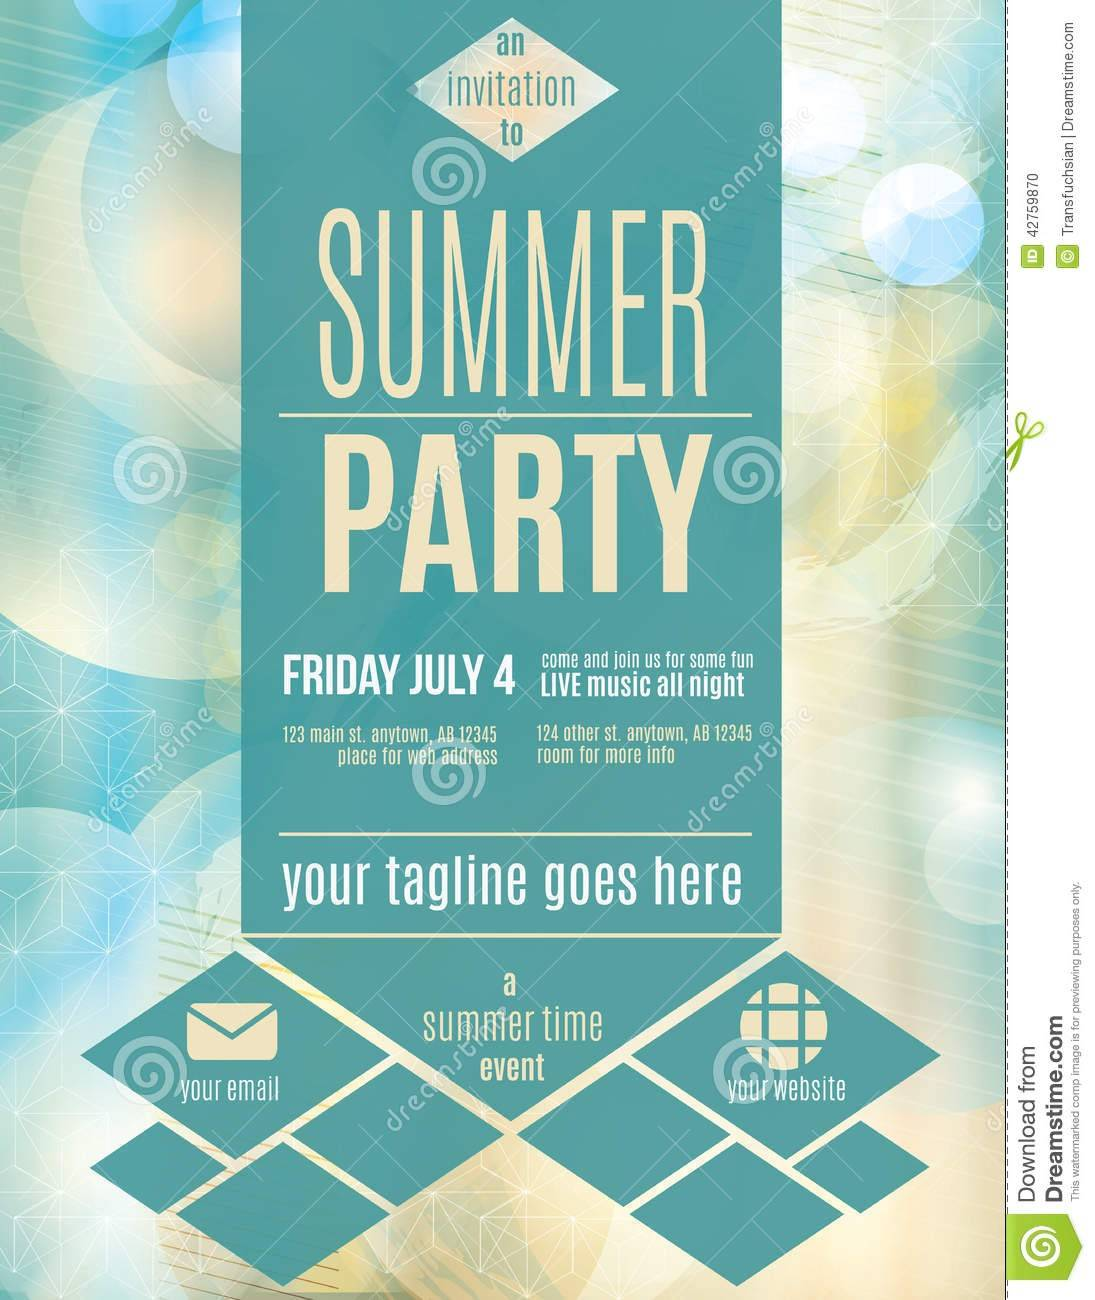 Invitation Flyers Templates Free